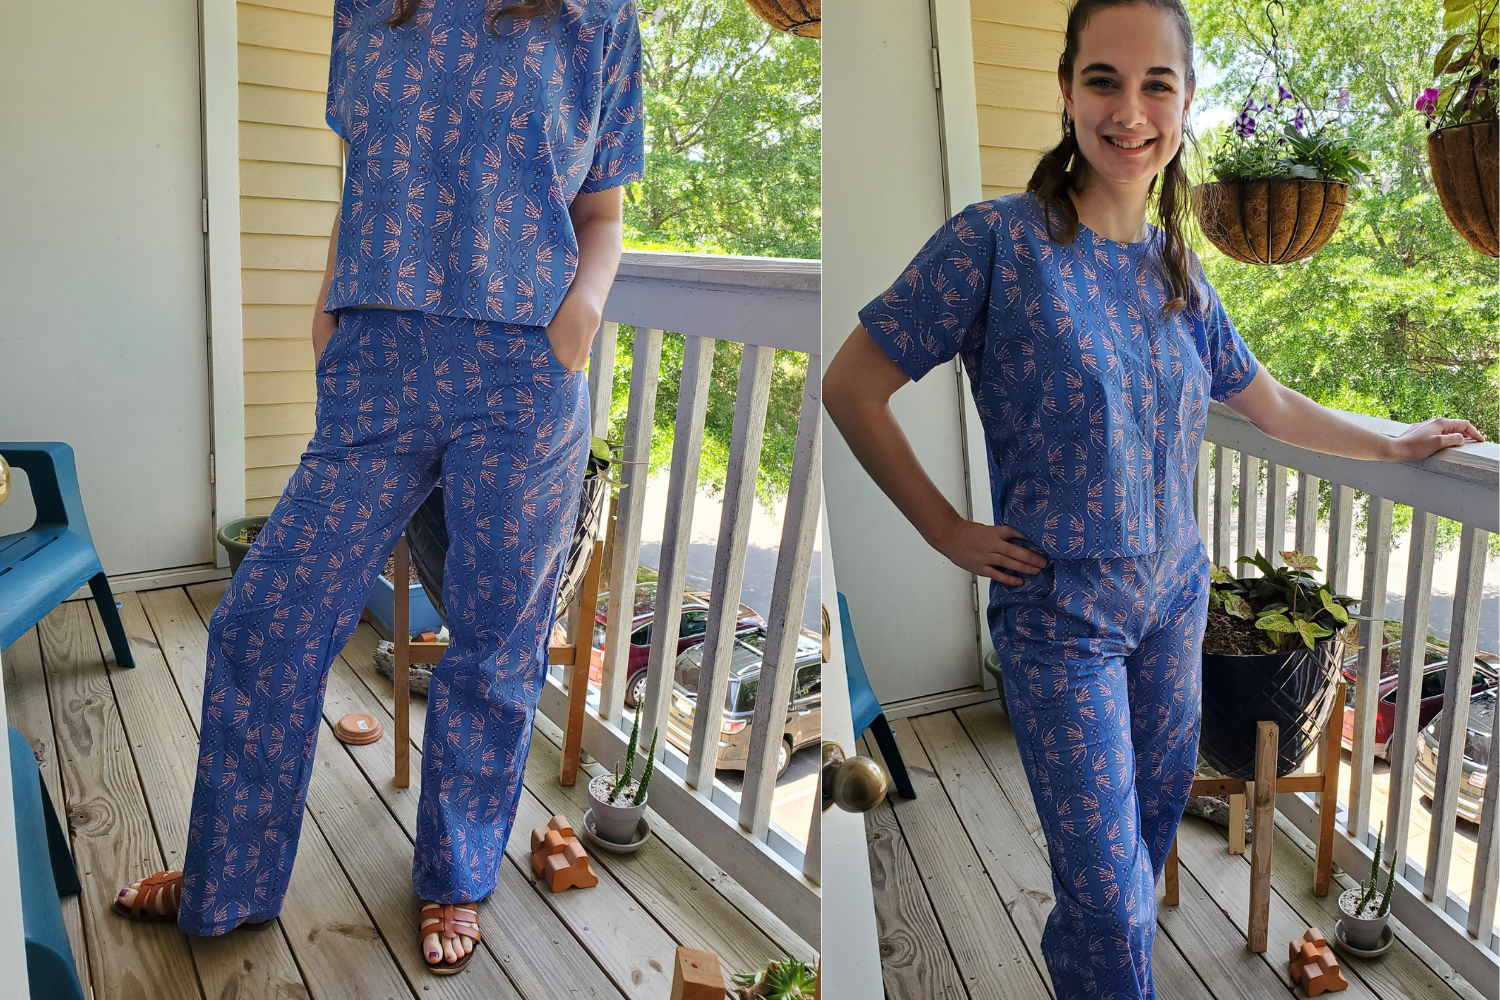 Model wearing blue loungewear set with pants and shirt